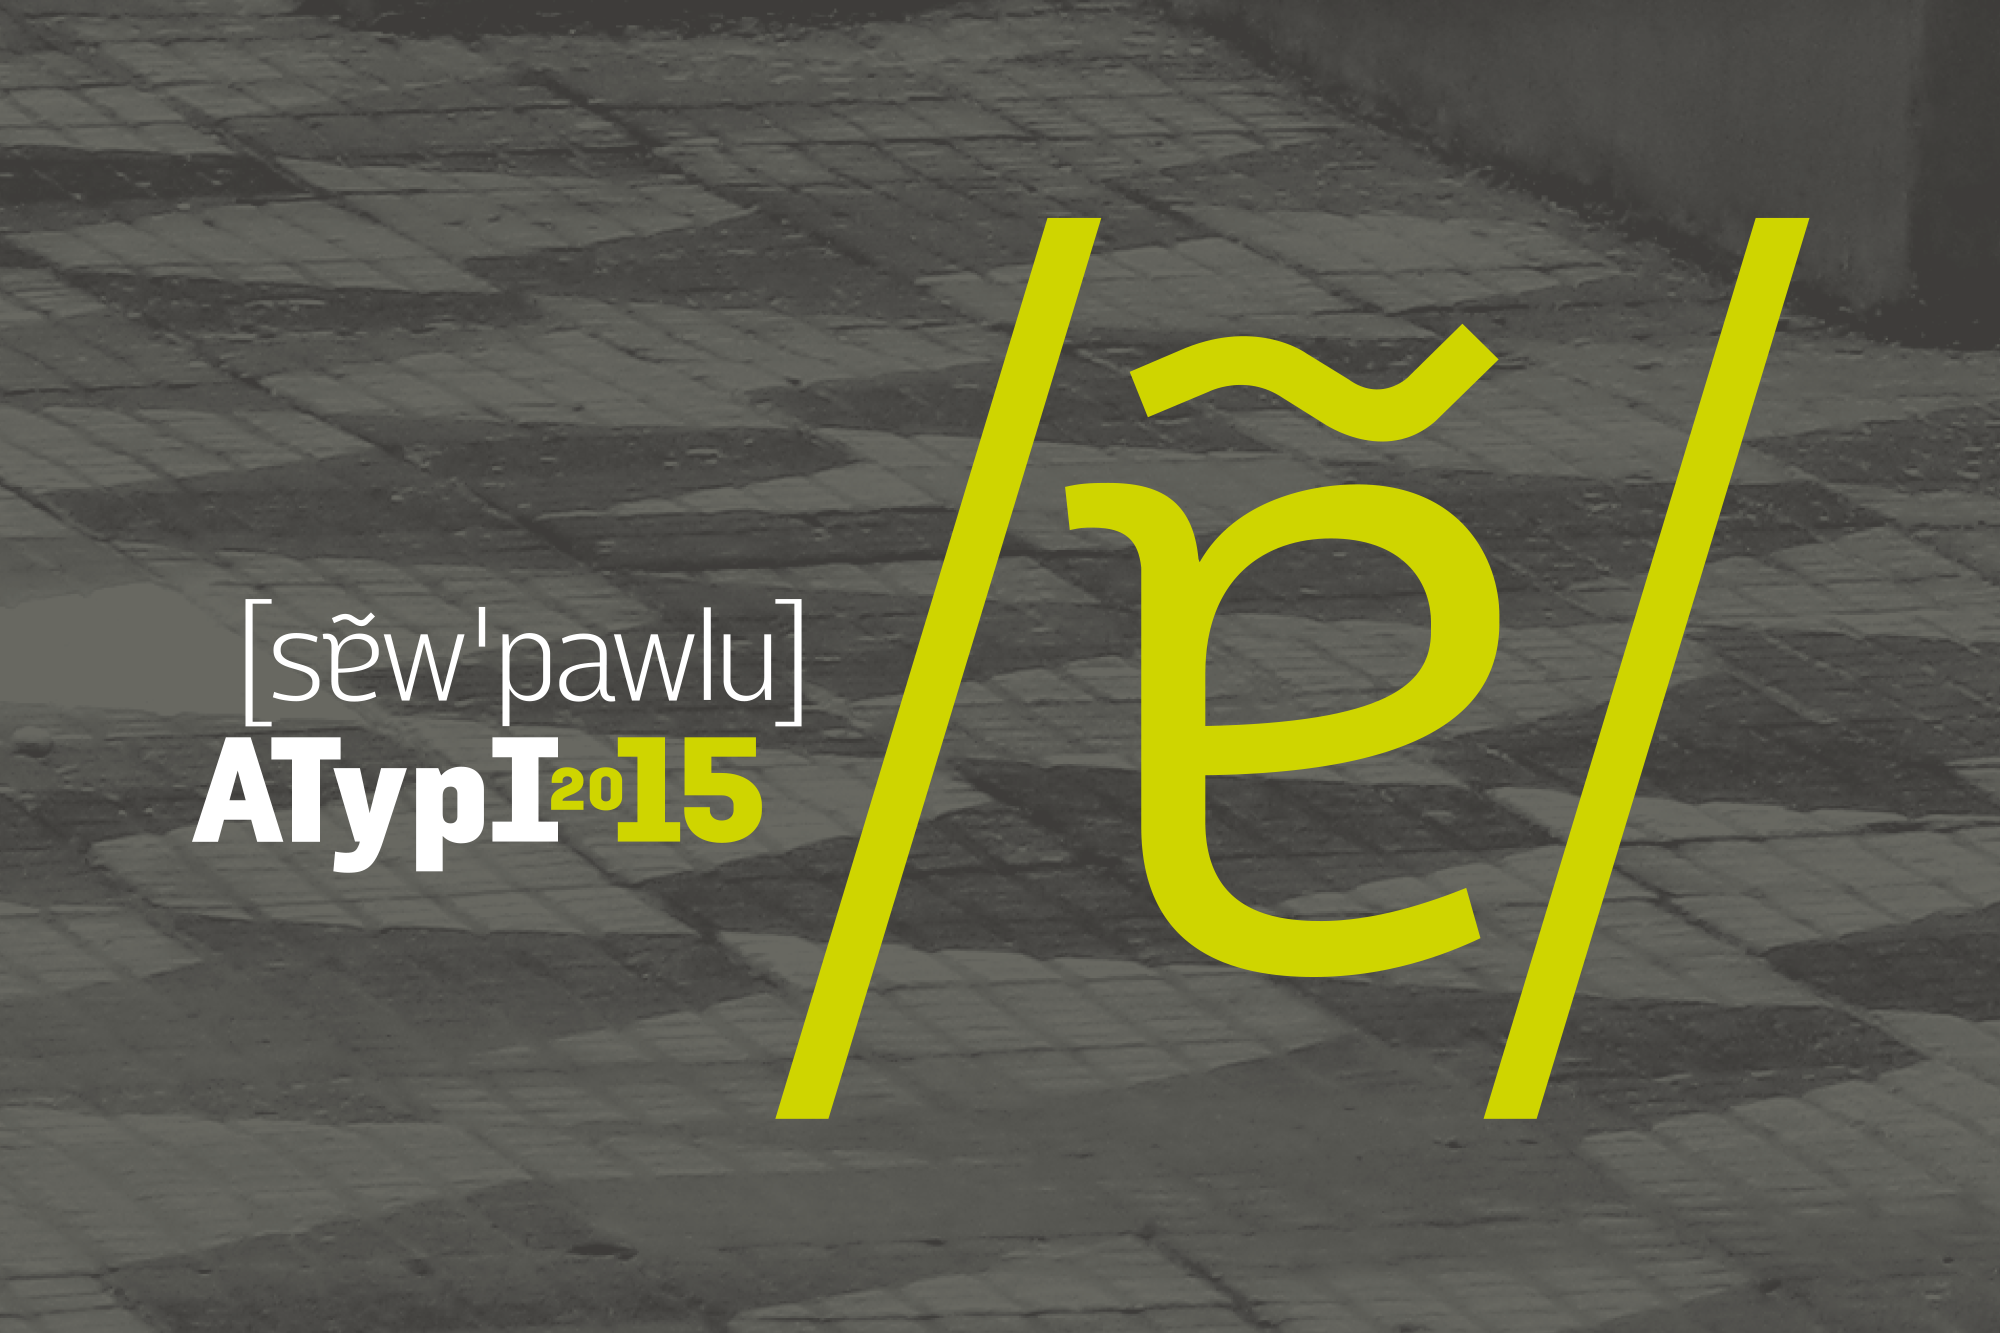 Logo of the 2015 ATypI conference, using a phonetic symbol